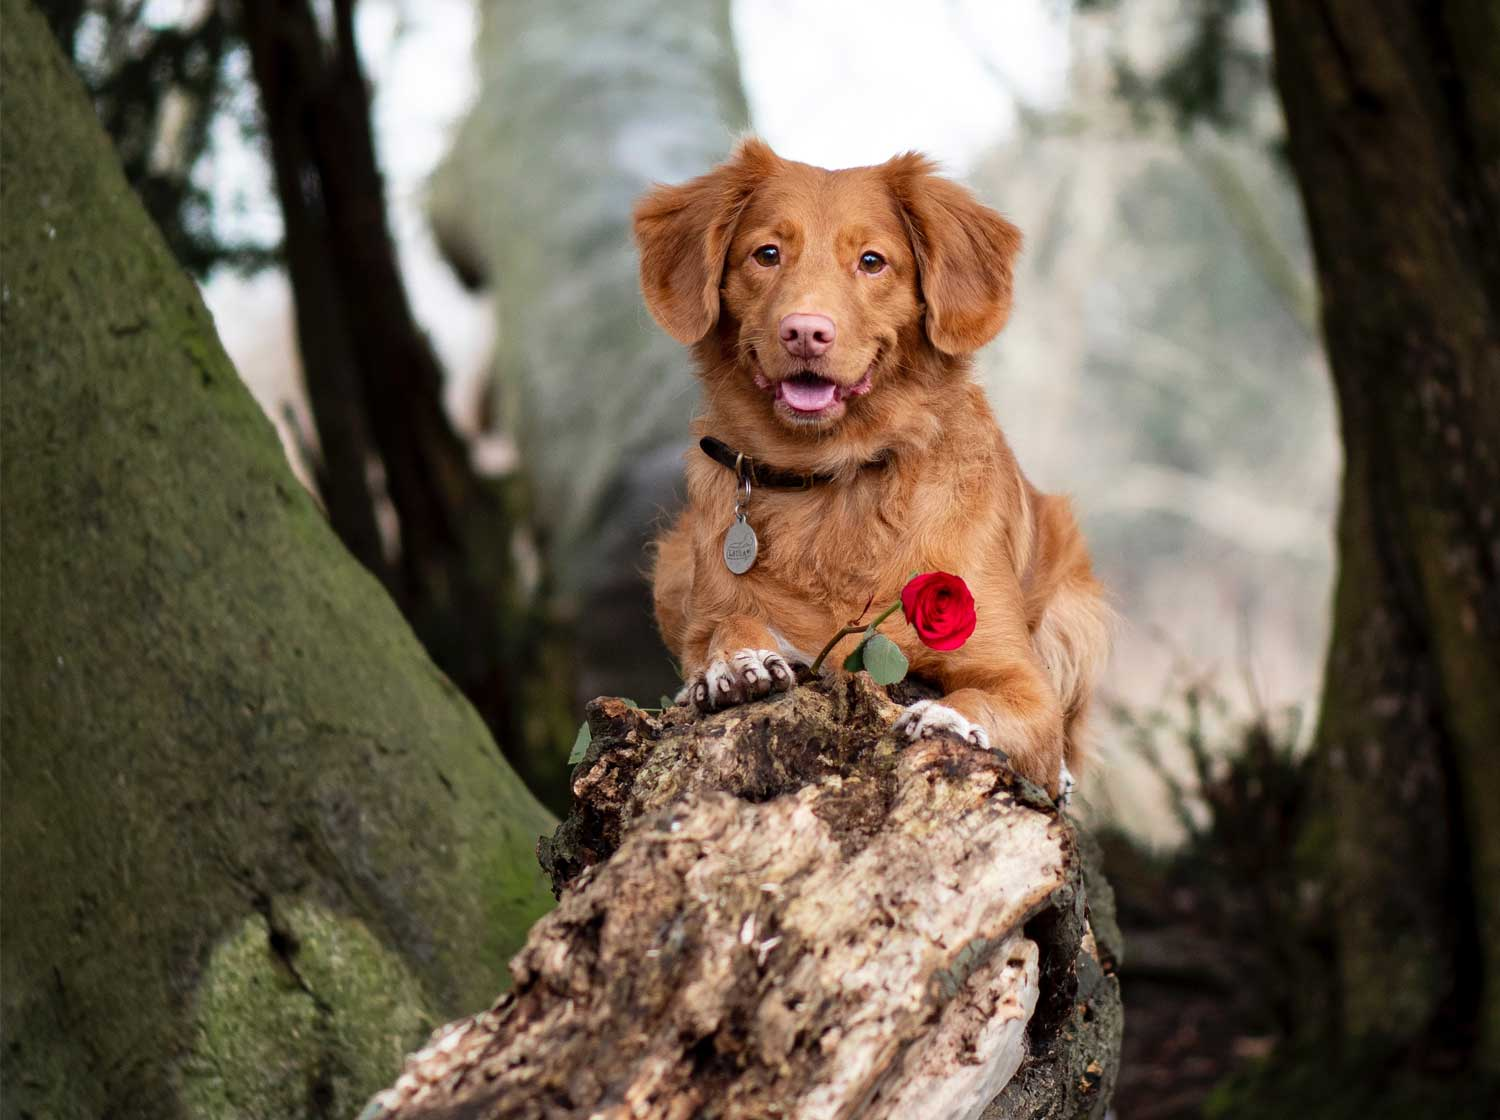 10 reasons your dog makes the best Valentine's Day date